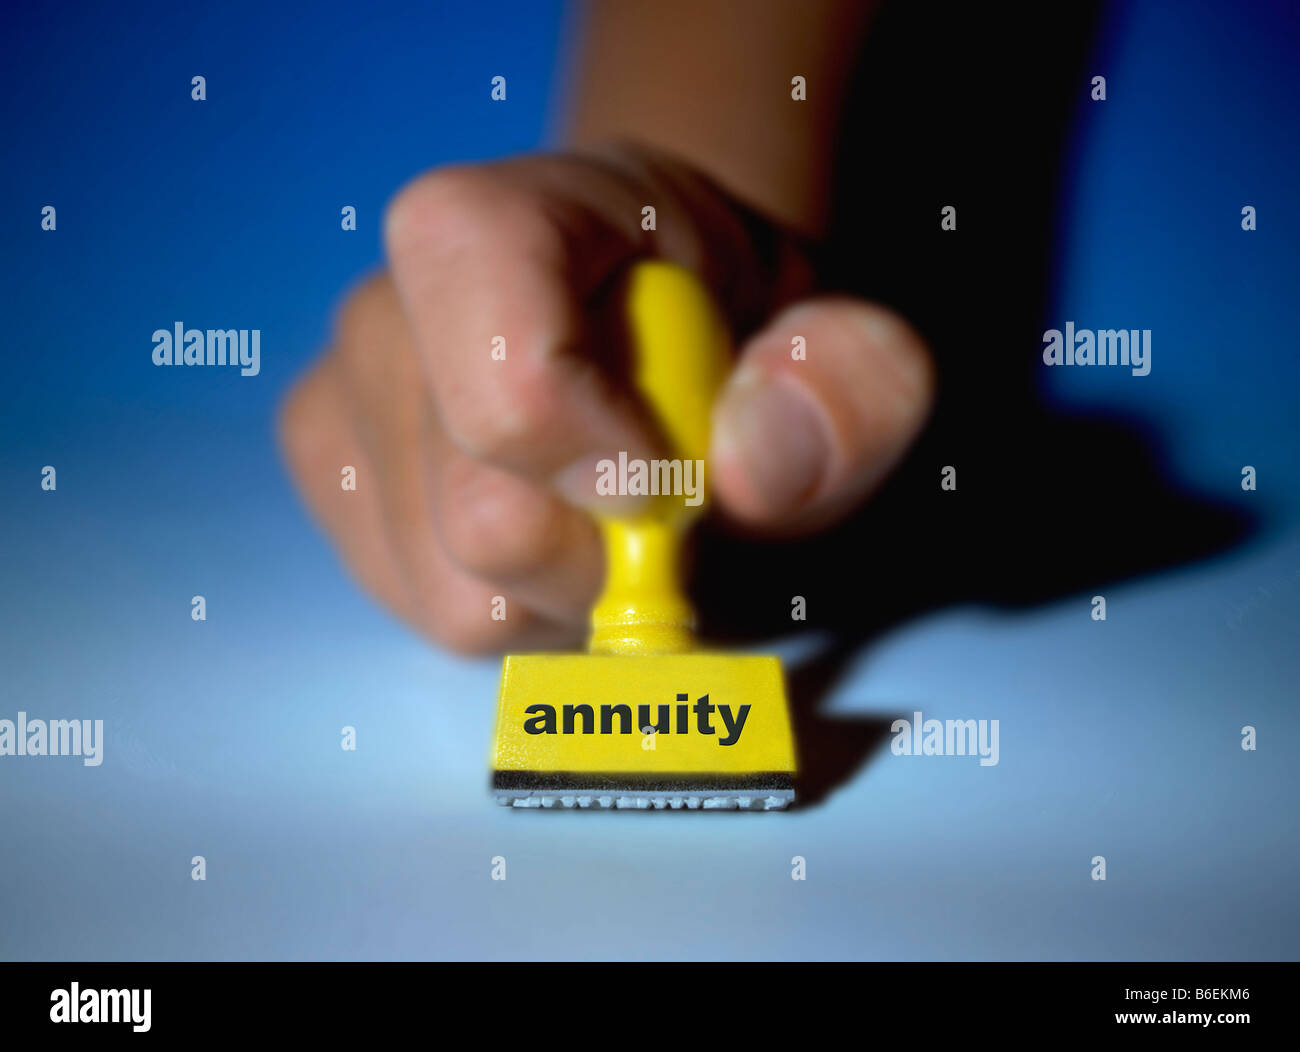 digital enhancement rubber stamp marked annuity - Stock Image